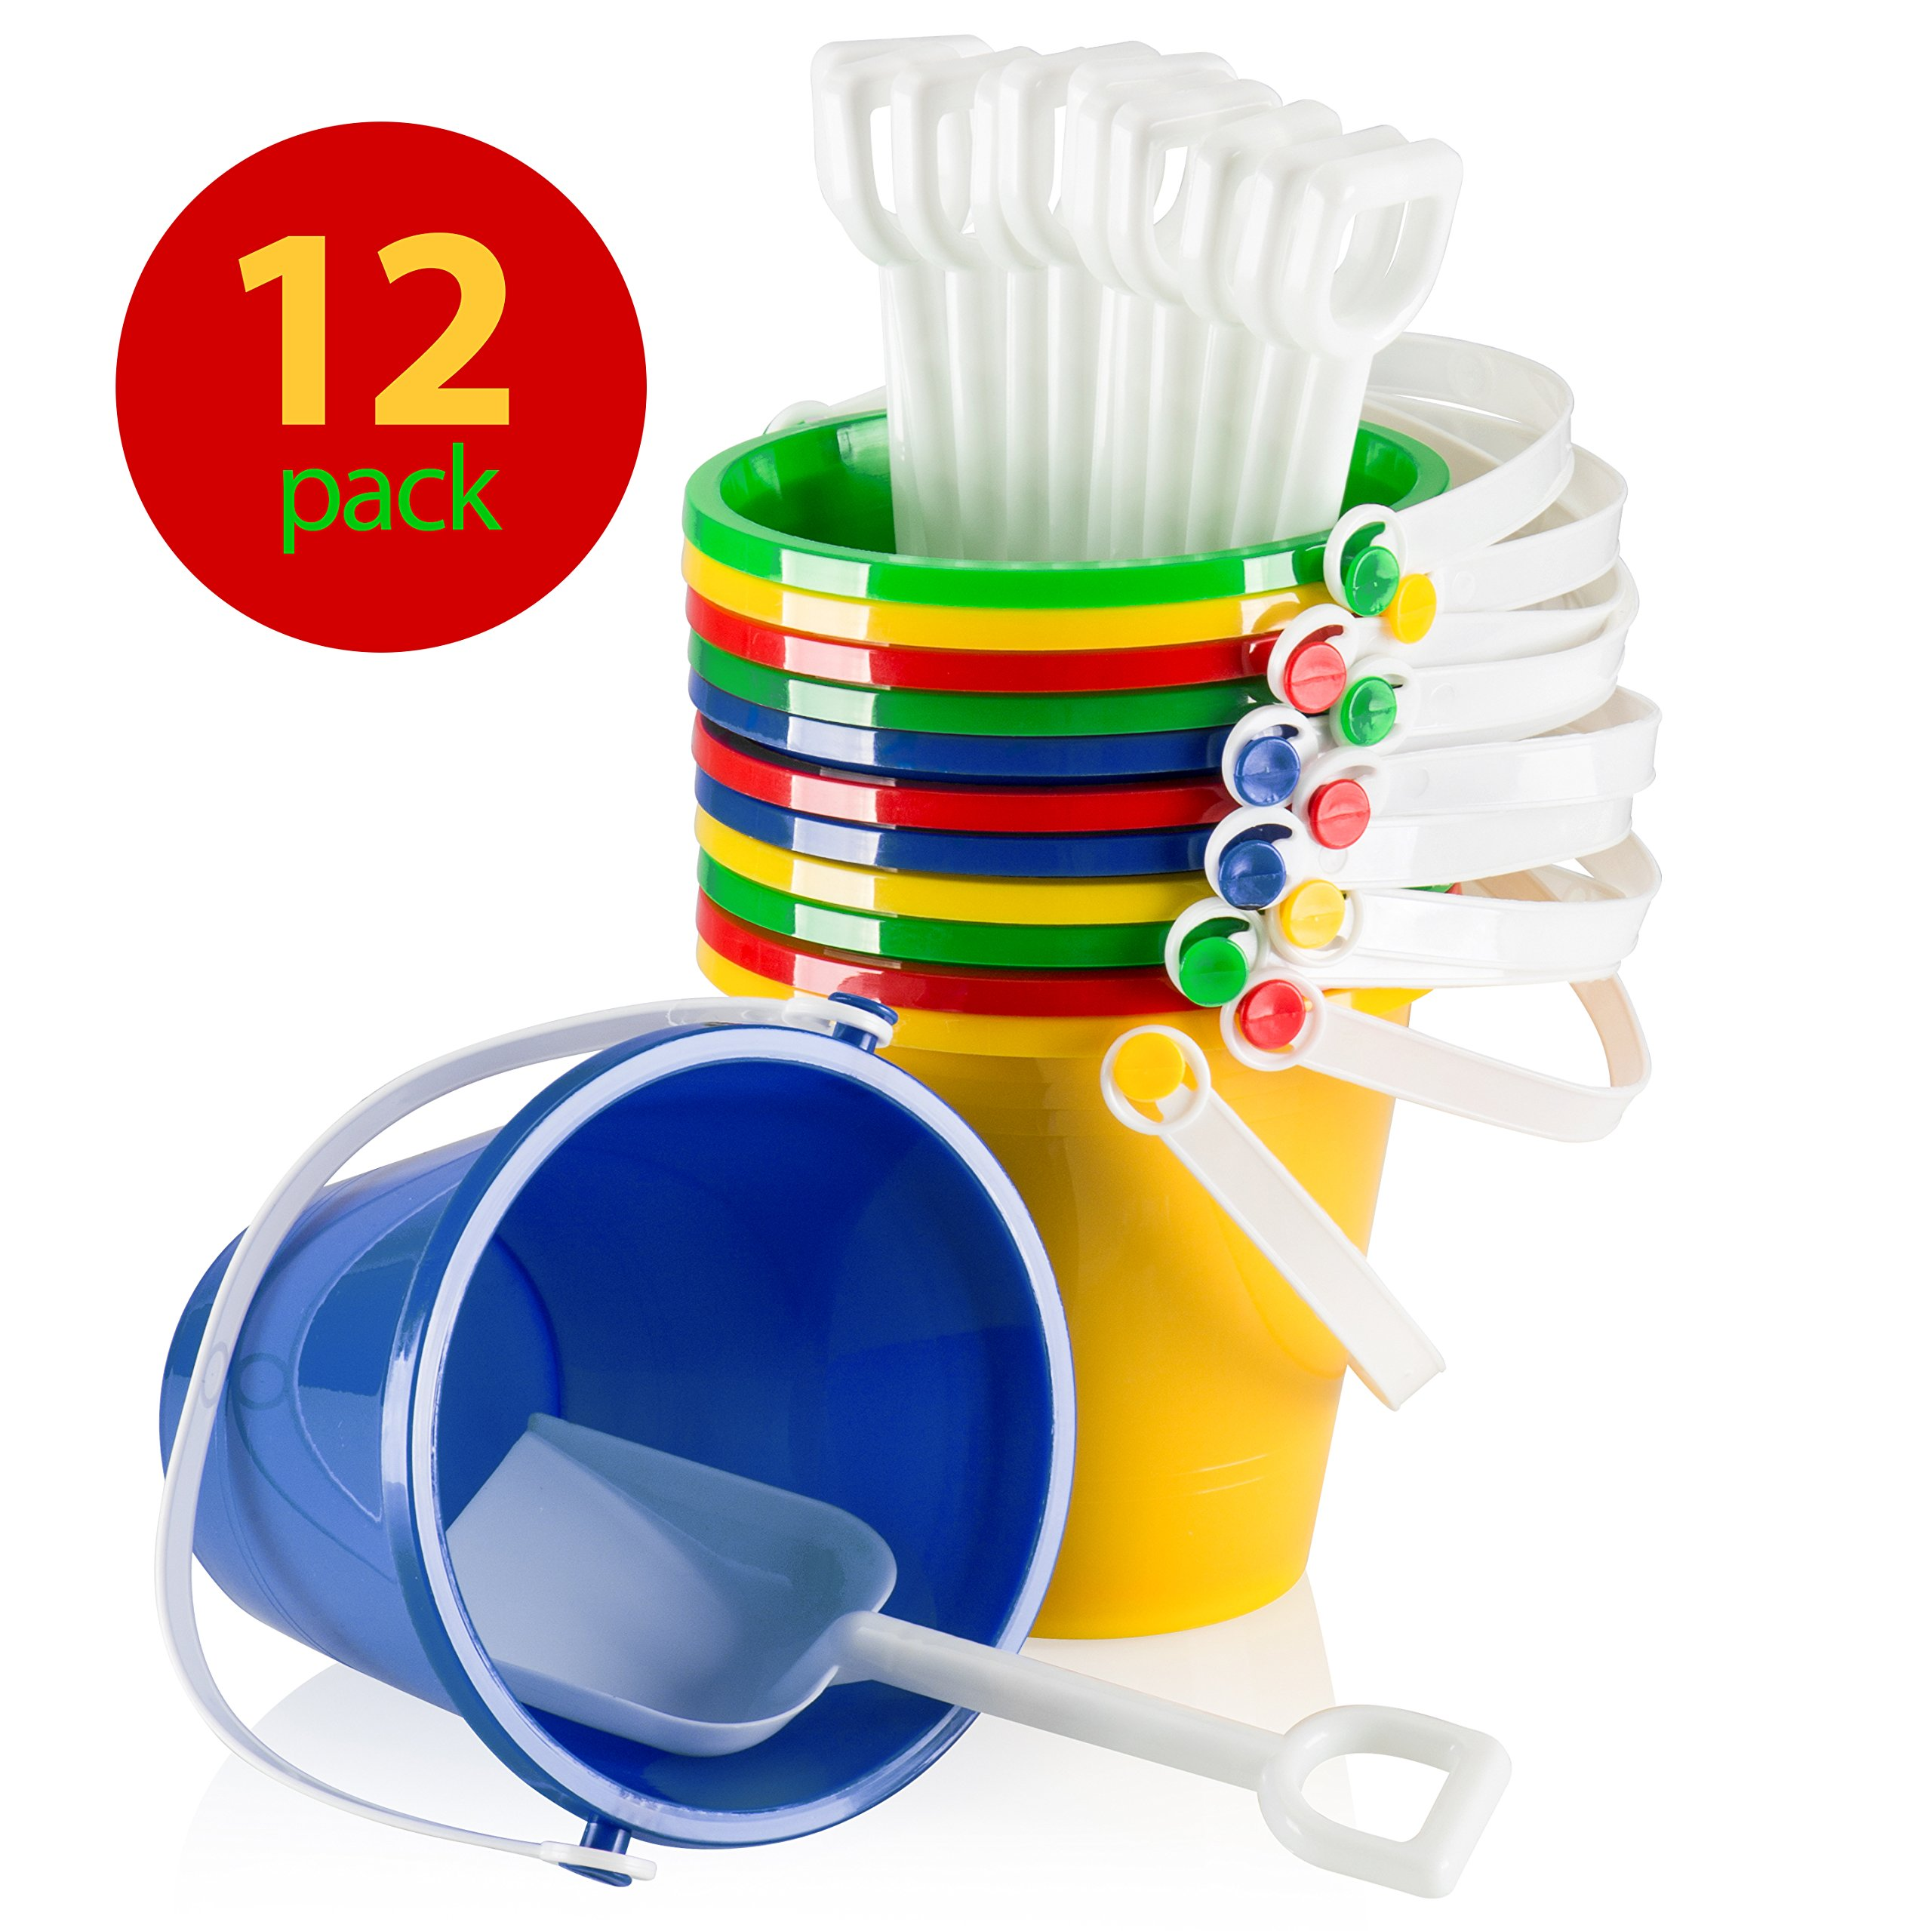 Top Race 5'' Inch Beach Pails Sand Buckets and Sand Shovels Set for Kids | Beach and Sand Toys at the beach | Use for Sand Molds at the Sandbox (Pack of 12 Sets) by Top Race